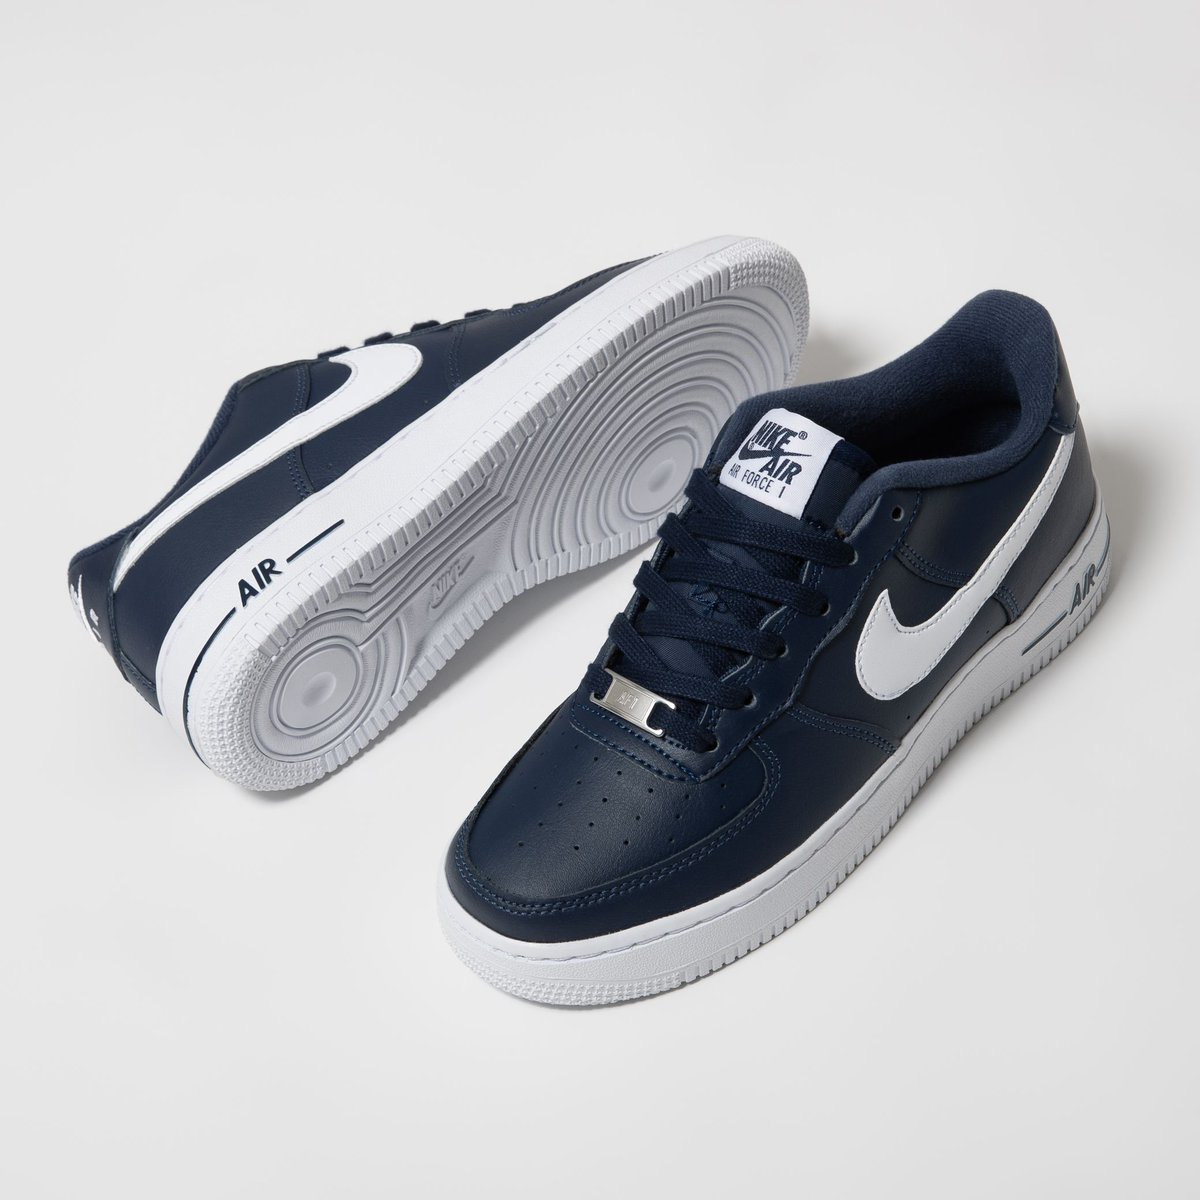 NEW💫 Nike Air Force 1 Low (GS) in Midnight Navy.  Online now ➡️ https://t.co/WDbJGZ828k  US 4Y (36) - US 7Y (40)  🔎 CT7724-400  #titoloSHOP #titolo #nike #airforce1 #nikeairforce1 #af1 #midnightnavy https://t.co/W4d0lBvKyo